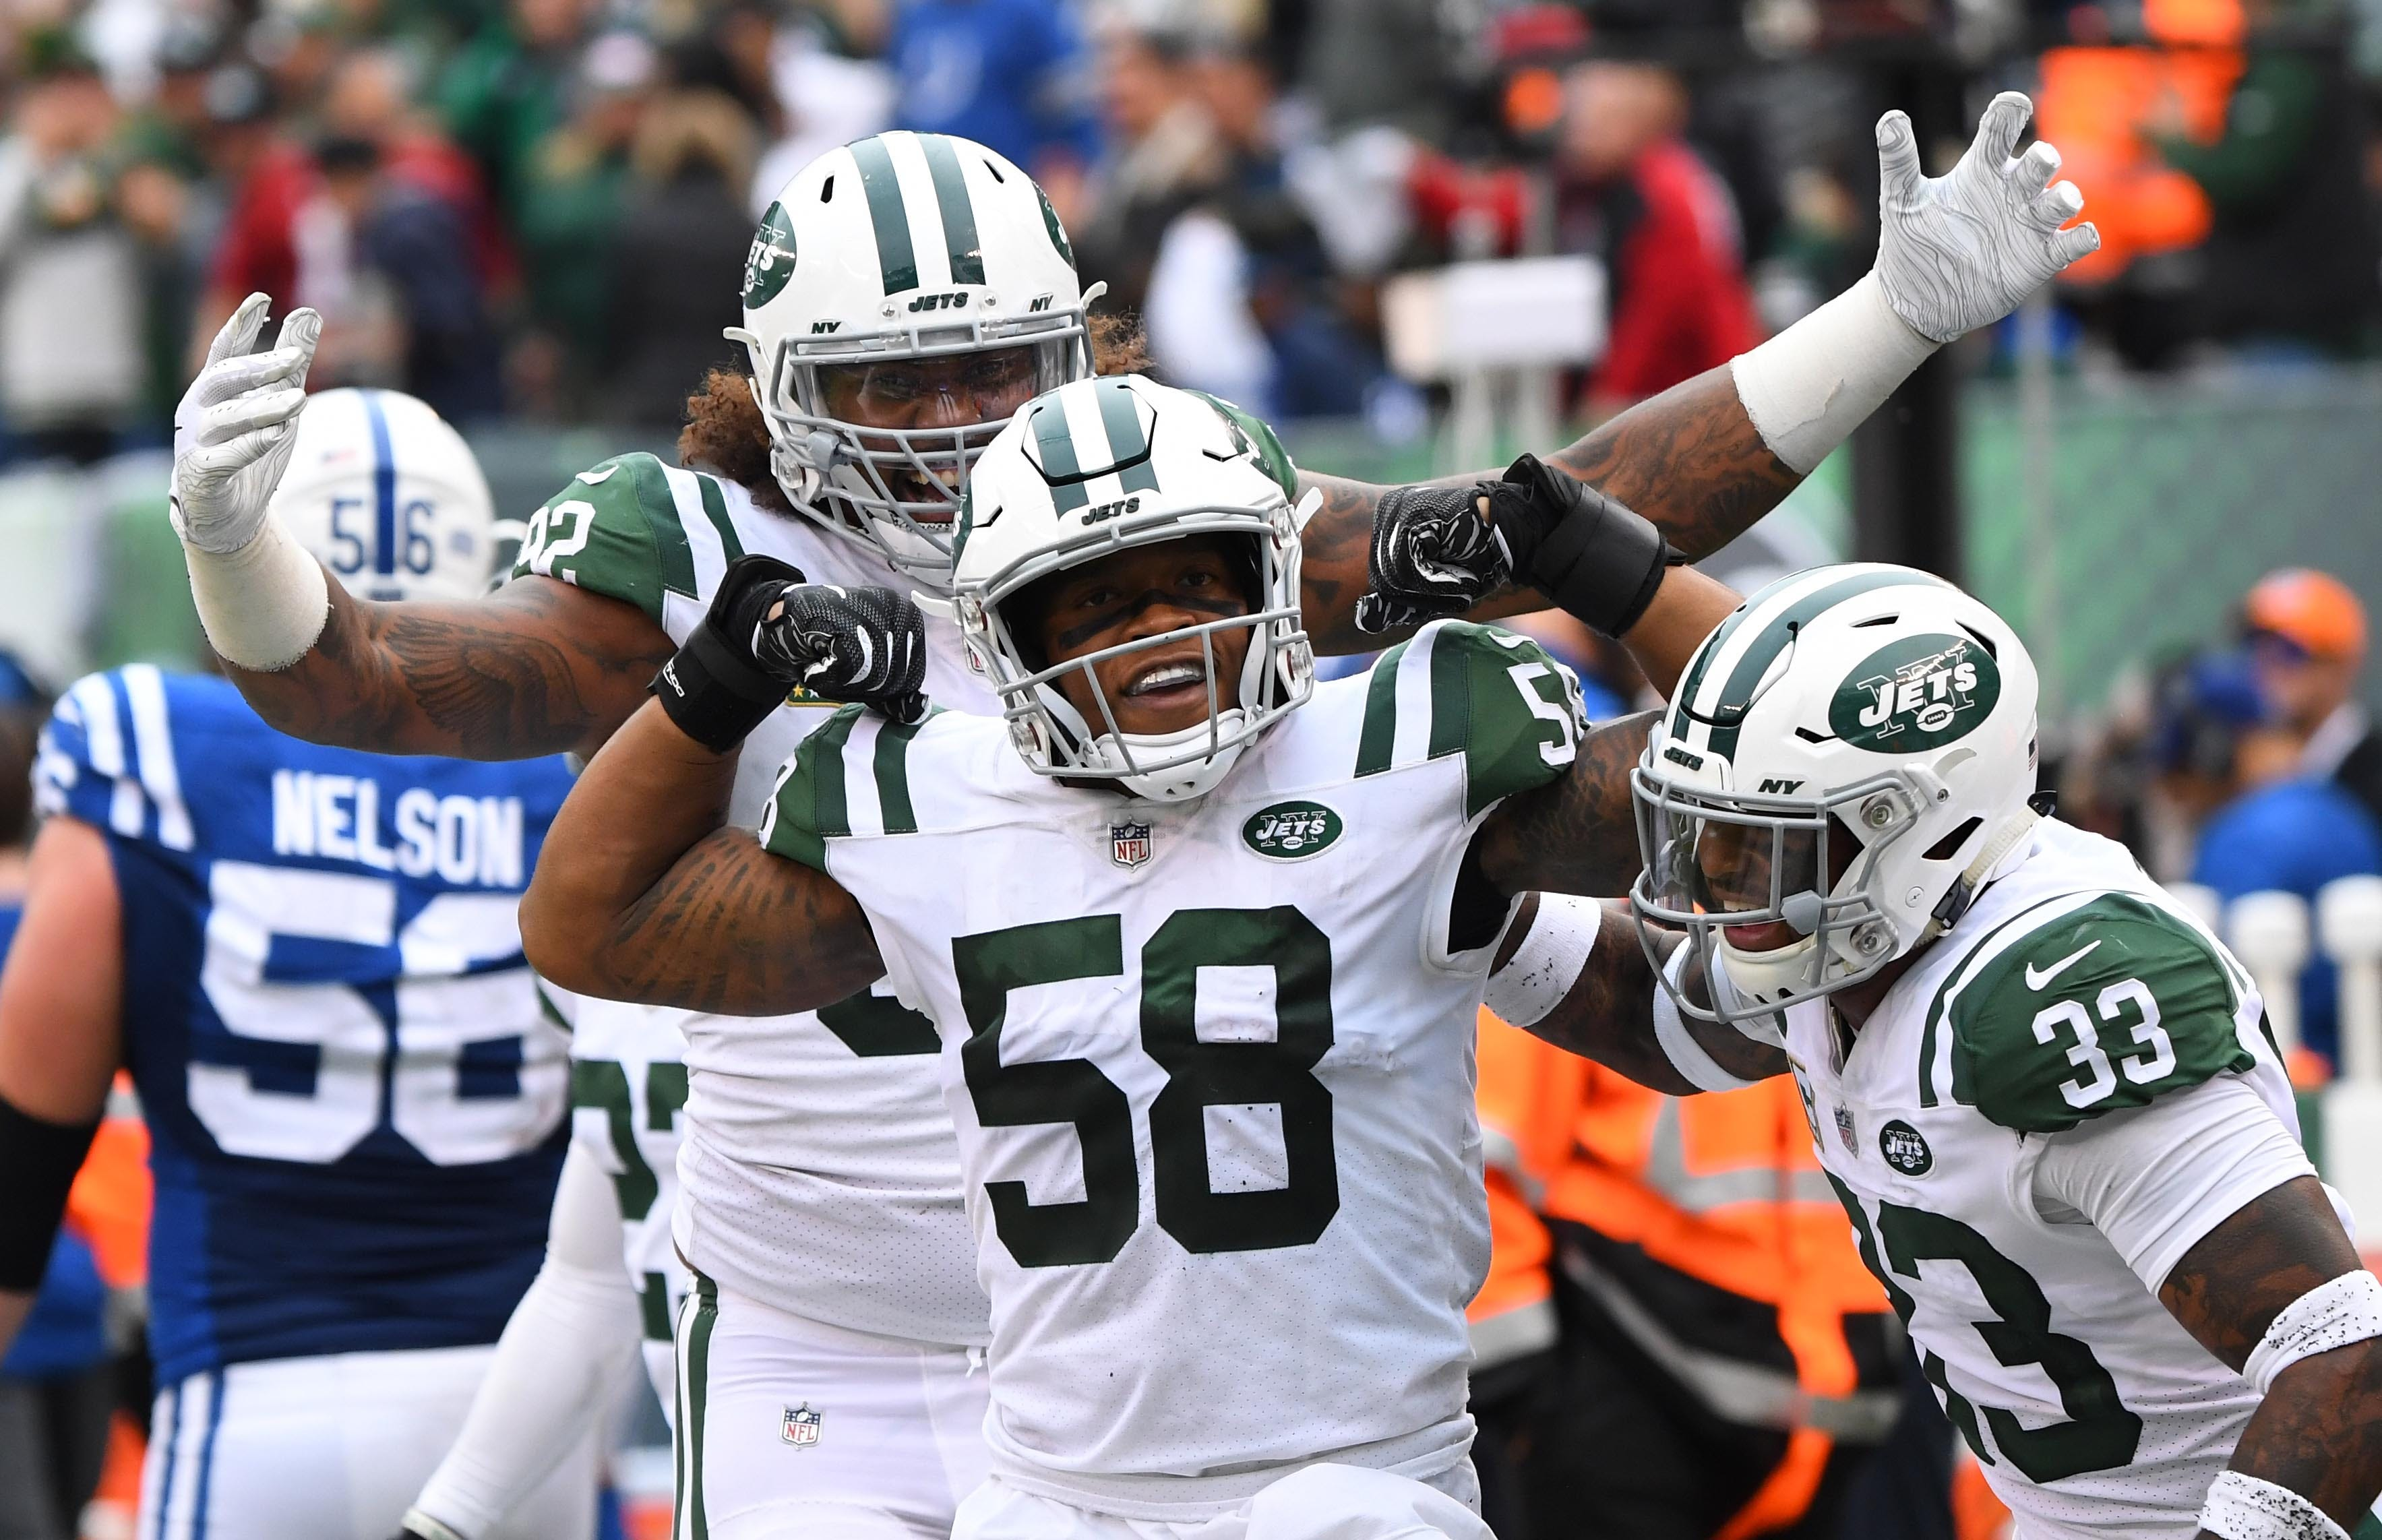 Jets trade Darron Lee, 2016 first-round pick, to Chiefs for sixth-round pick, per reports